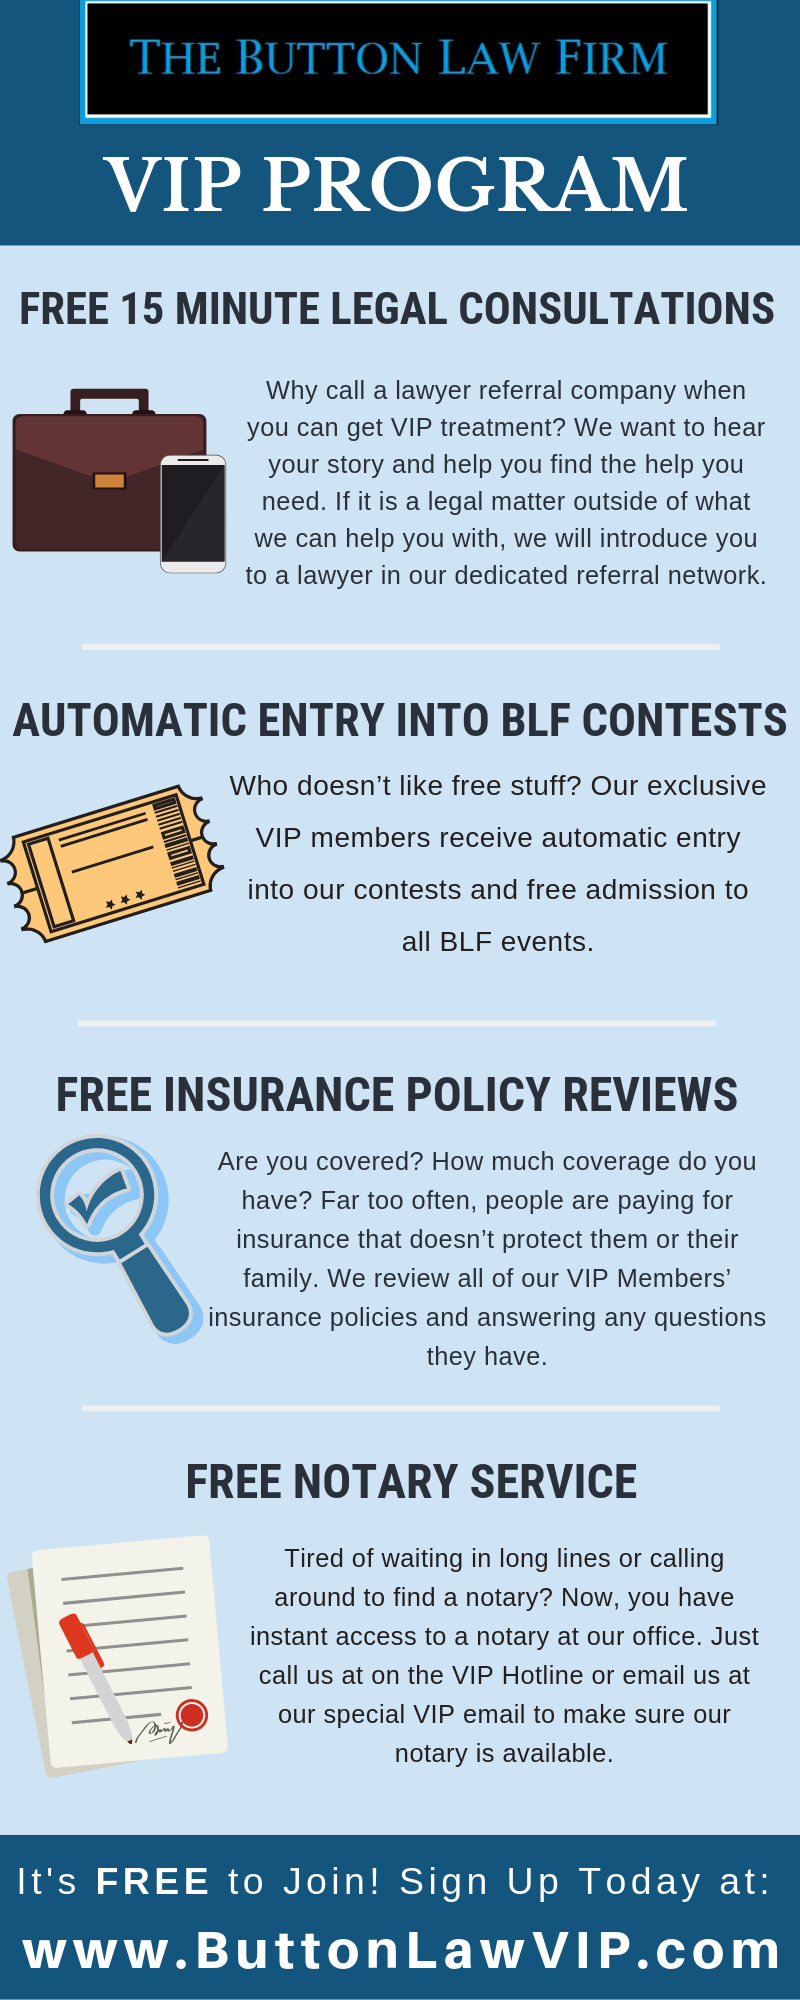 The Button Law Firm VIP Program for clients